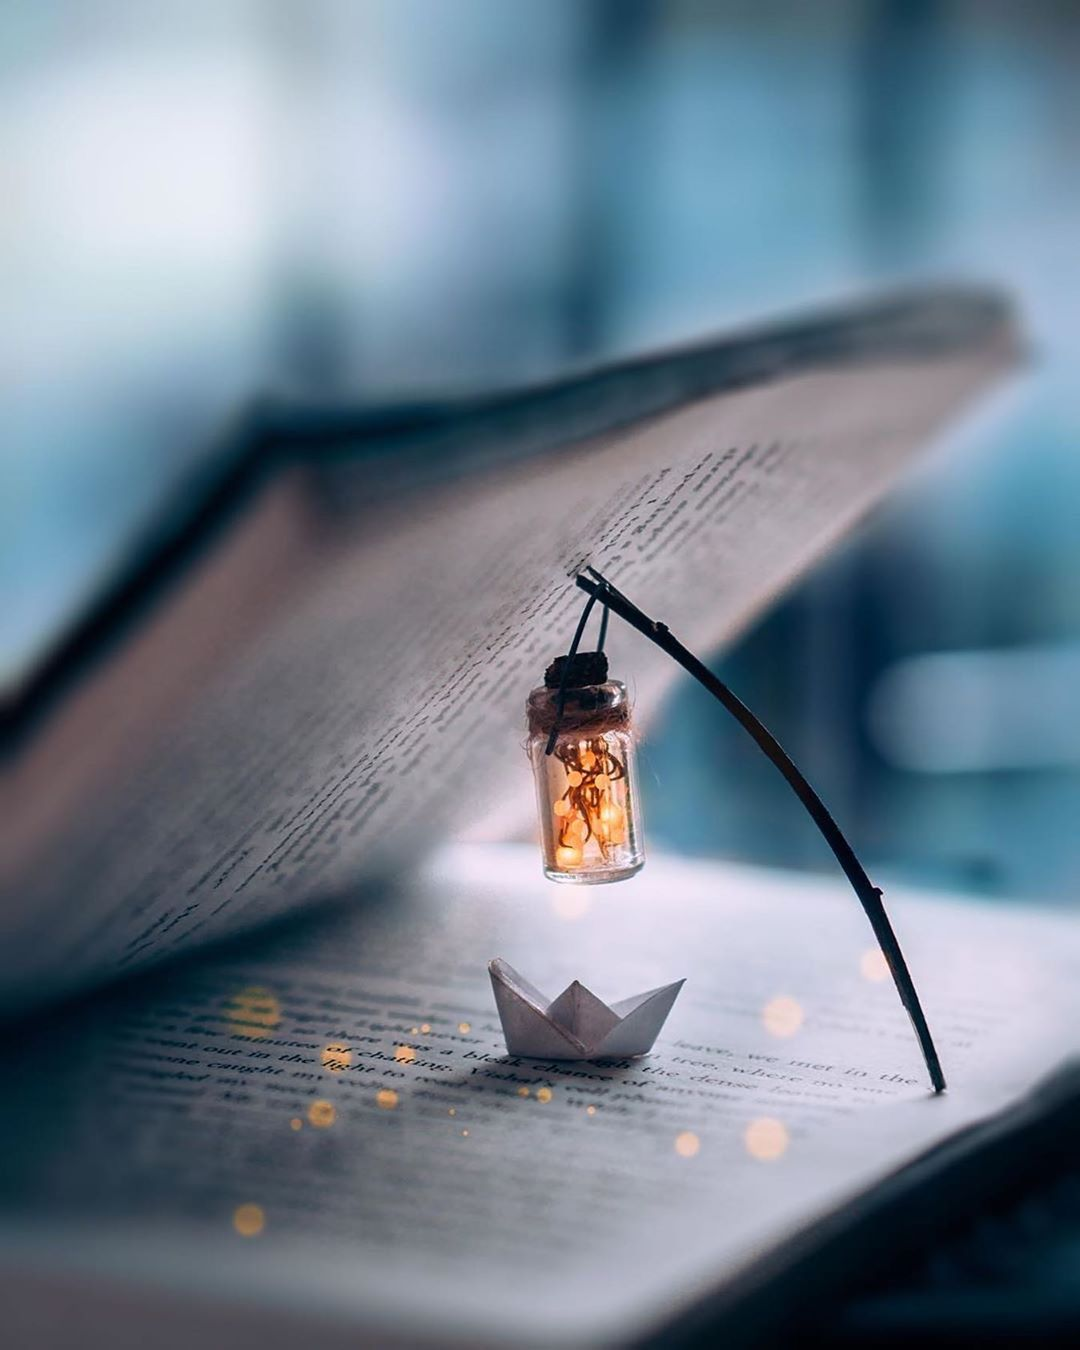 book, lantern, light, knowledge, wisdom, learning, love learn play, philosophy, religion, knowledge integration, interdisciplinary, collective wisdom, humanity